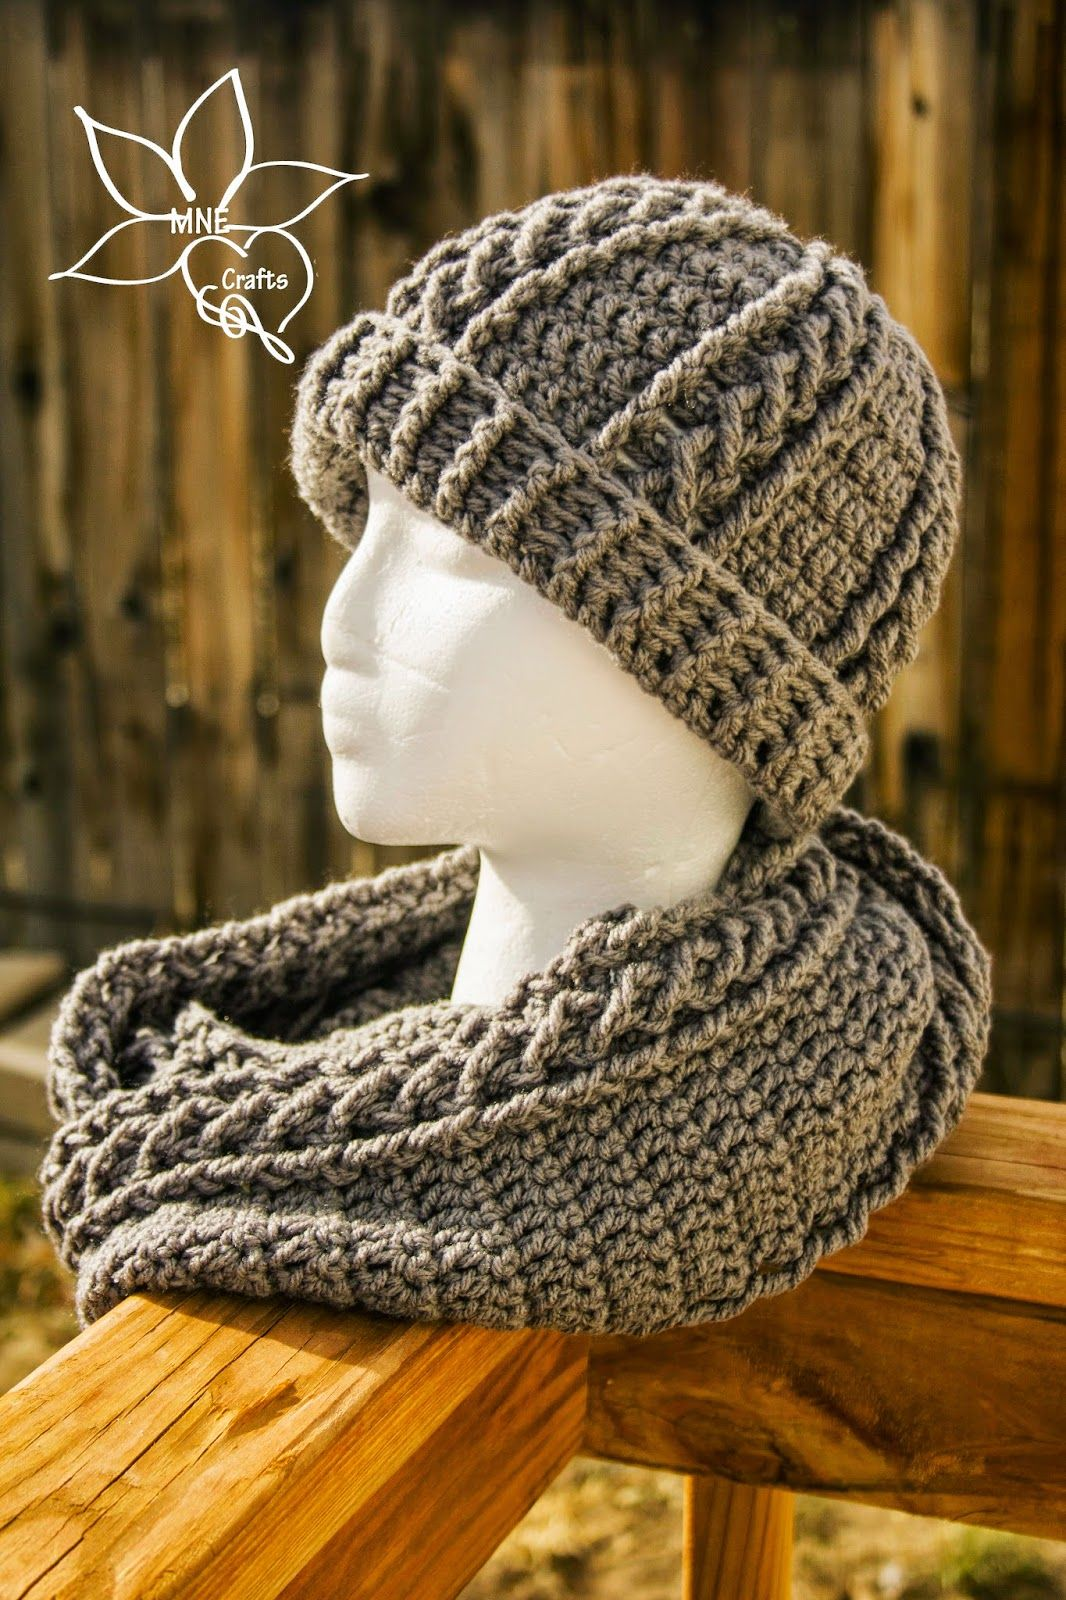 FREE Pattern - MNE Crafts: Braids & Cables Beanie & Cowl Set ...